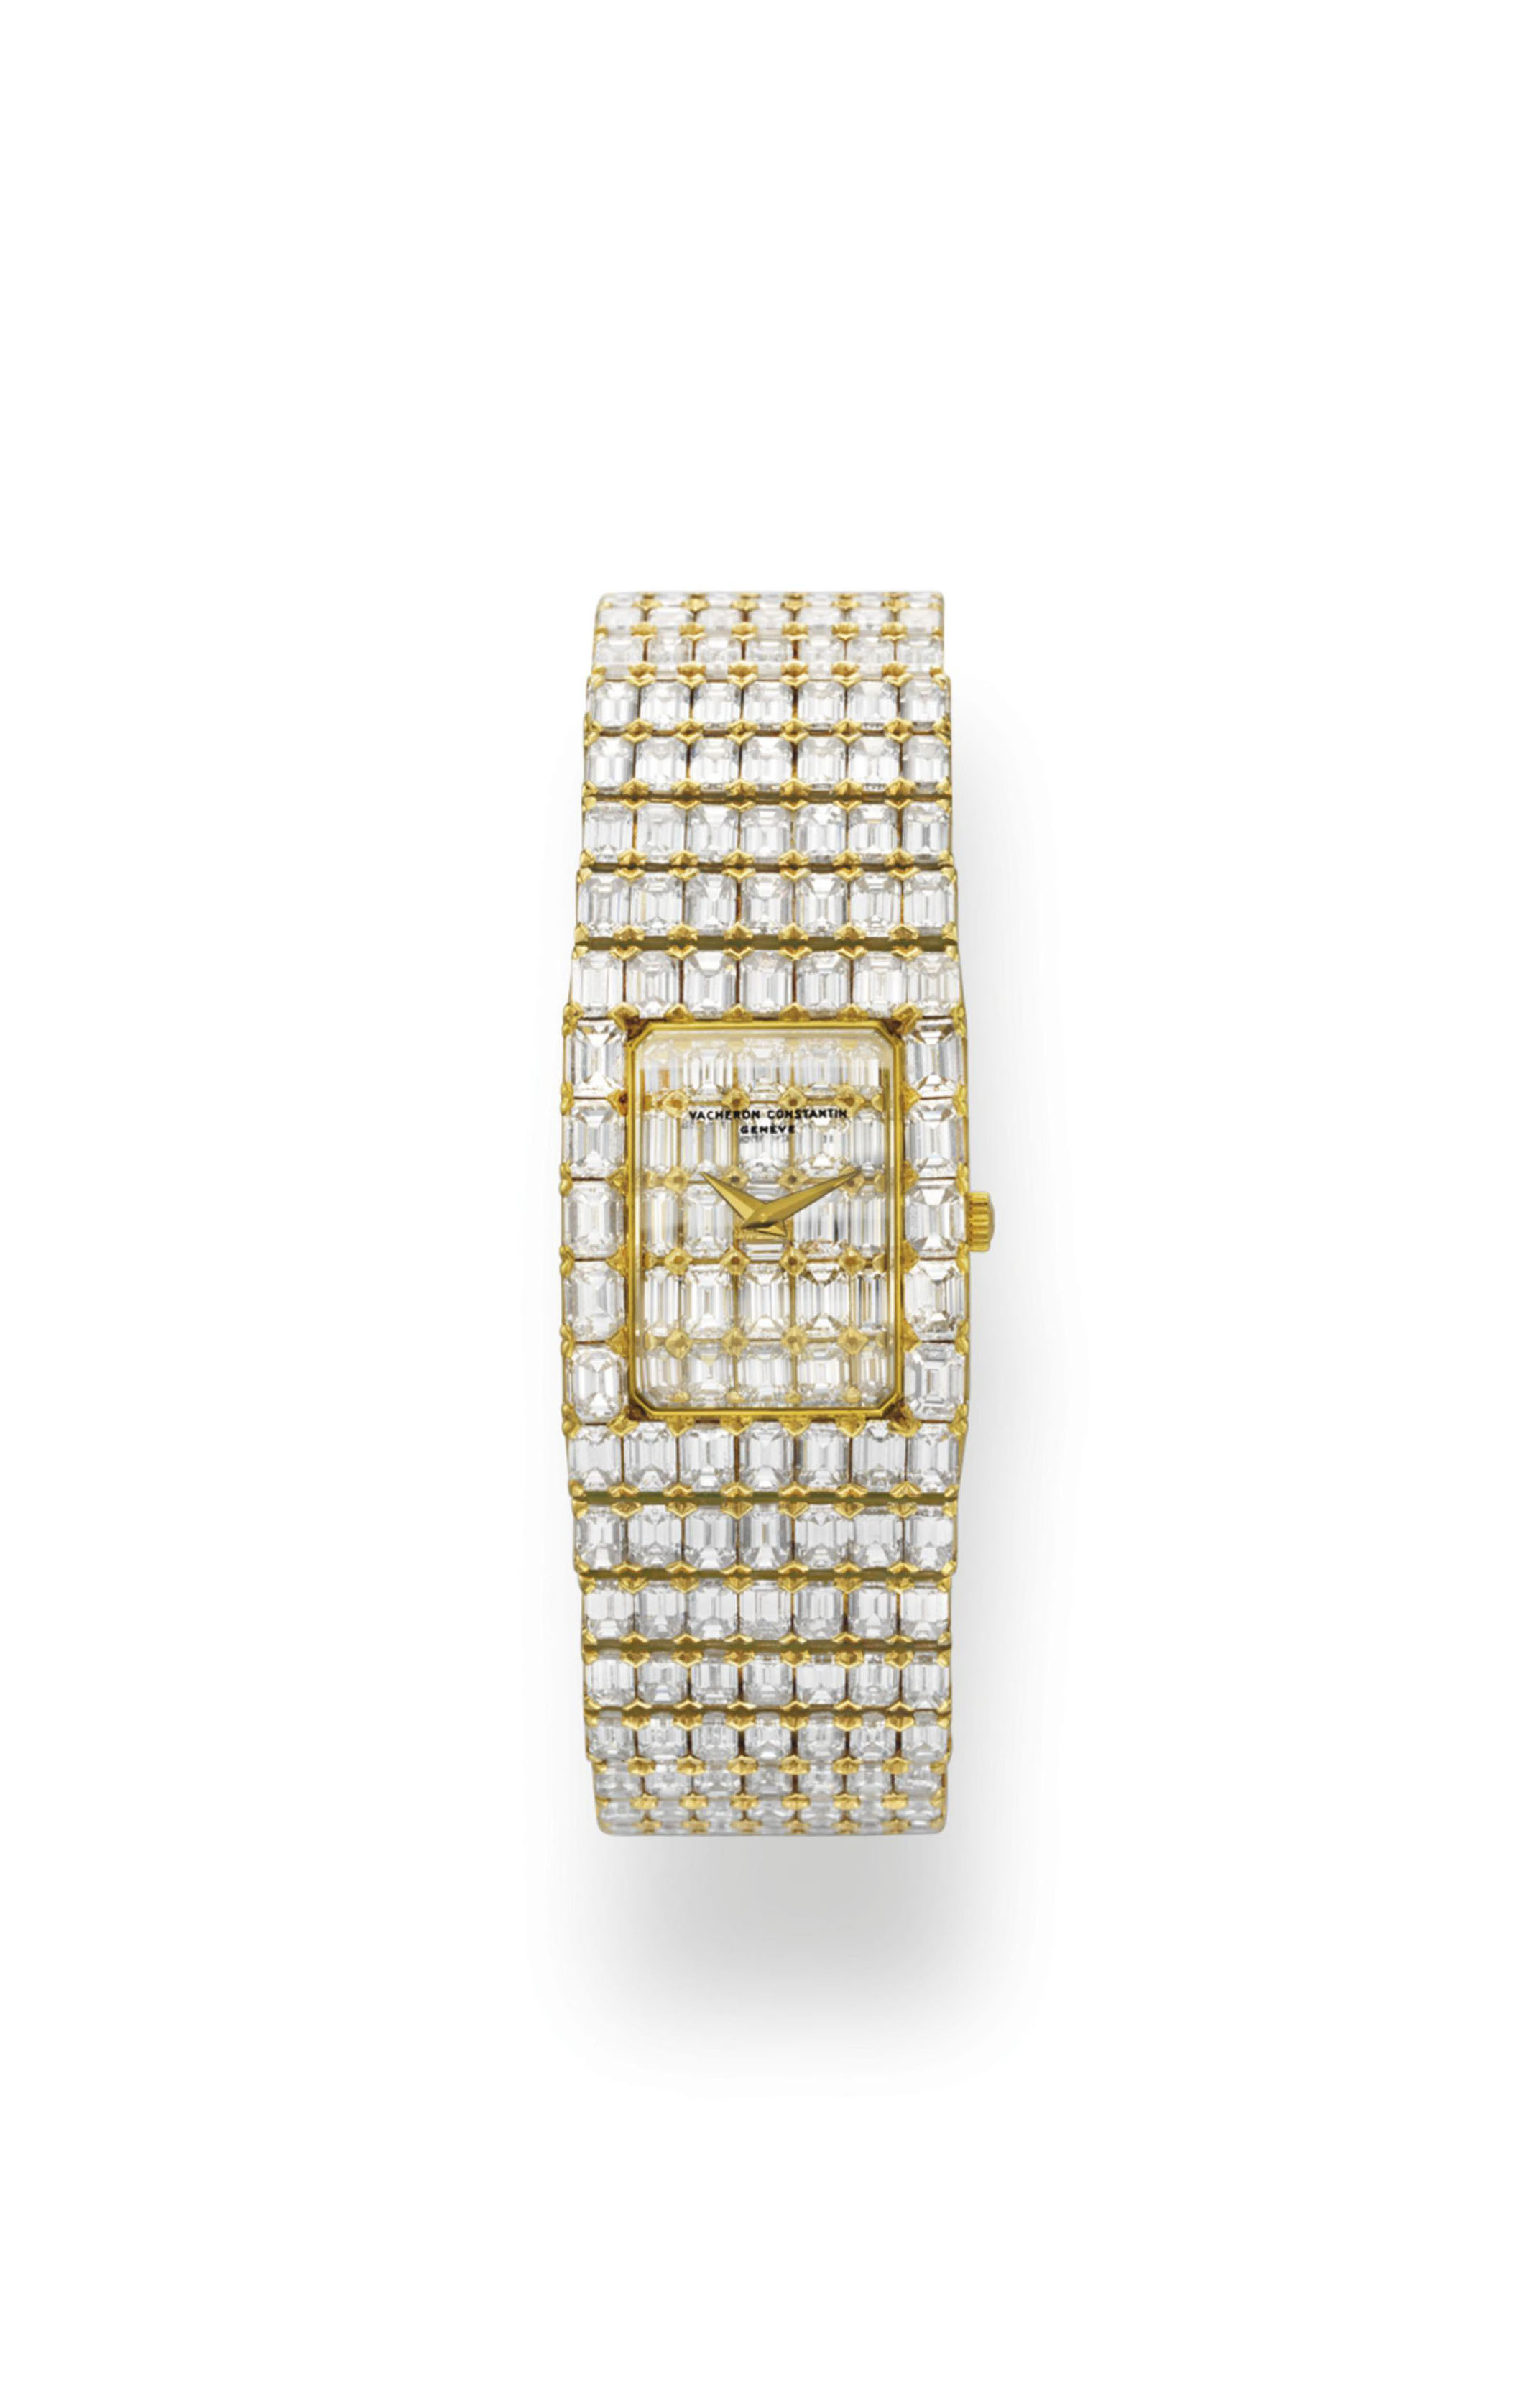 "A DIAMOND AND GOLD ""LORD KALLA"" BRACELET WATCH, BY VACHERON CONSTANTIN"